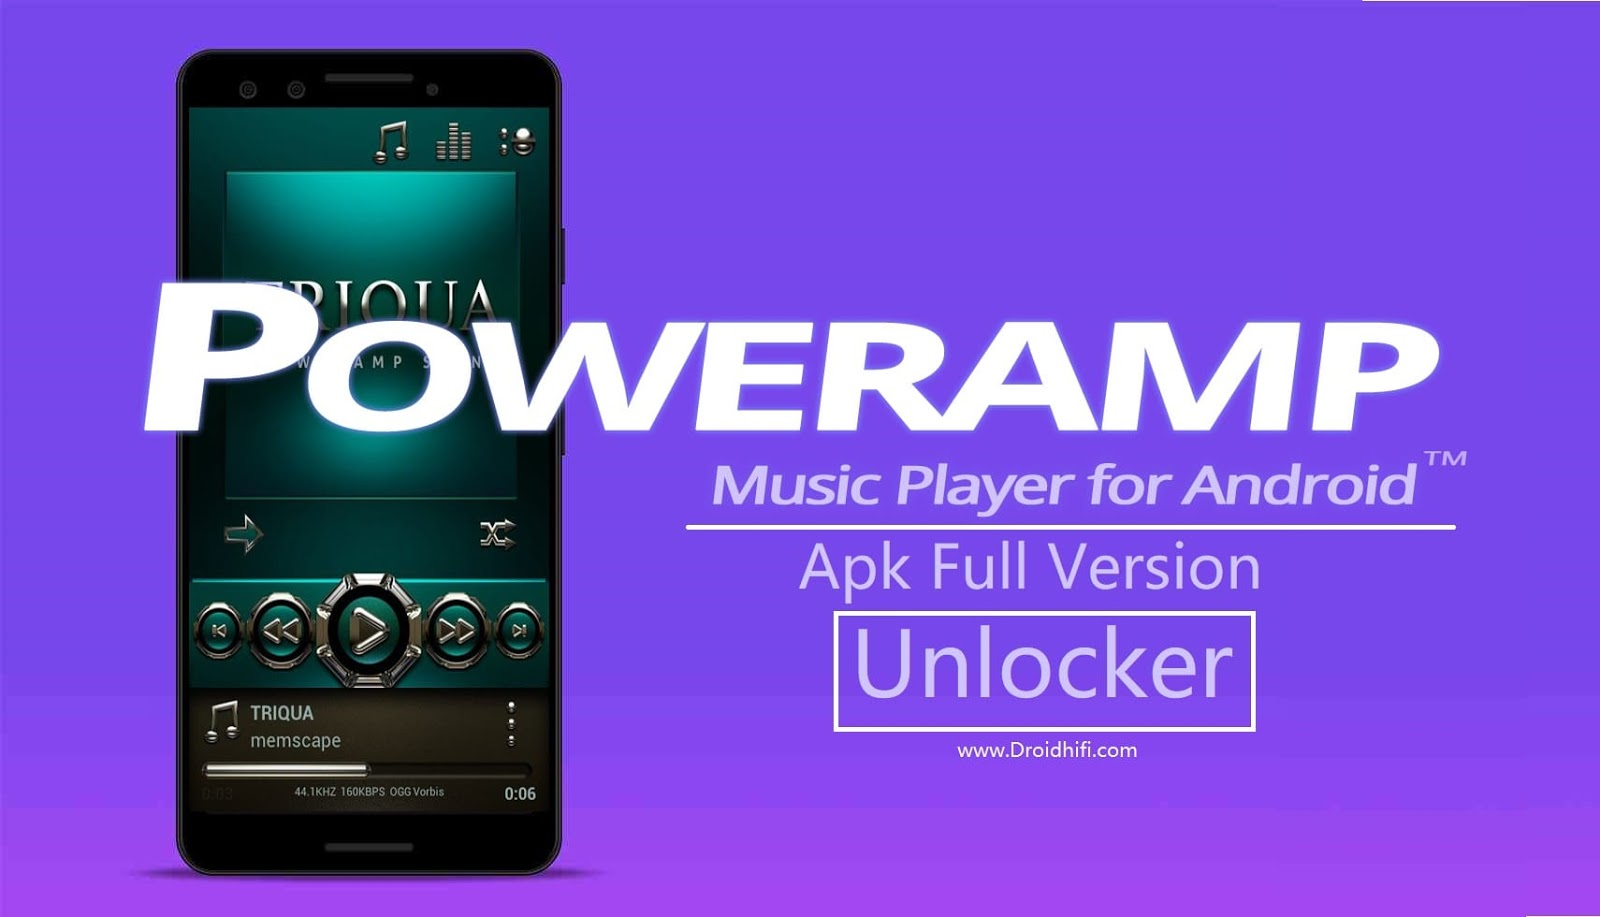 Poweramp music player full version unlocker free download | Poweramp